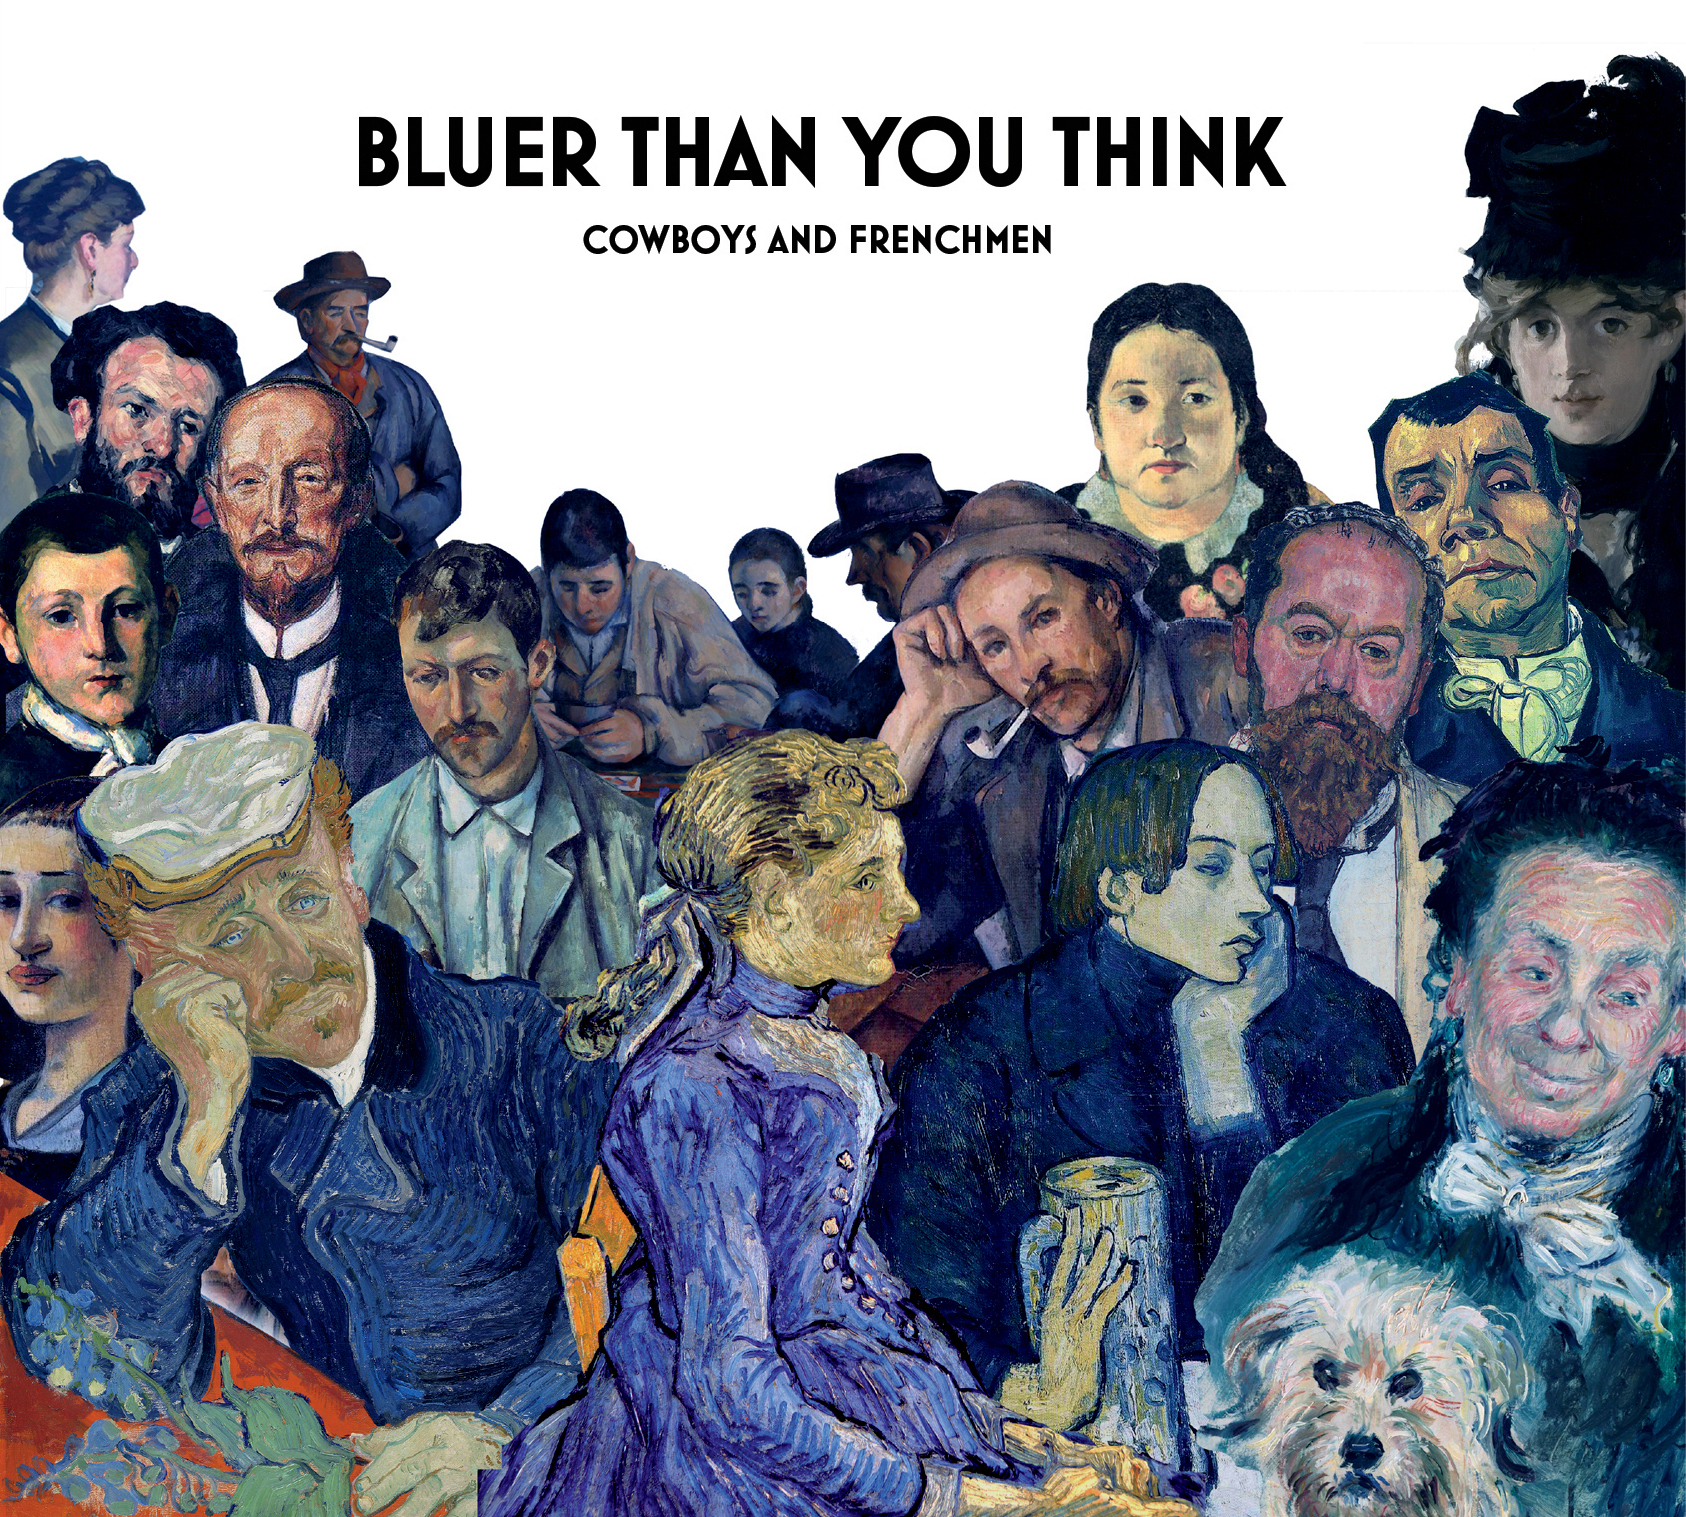 Bluer Than You Think